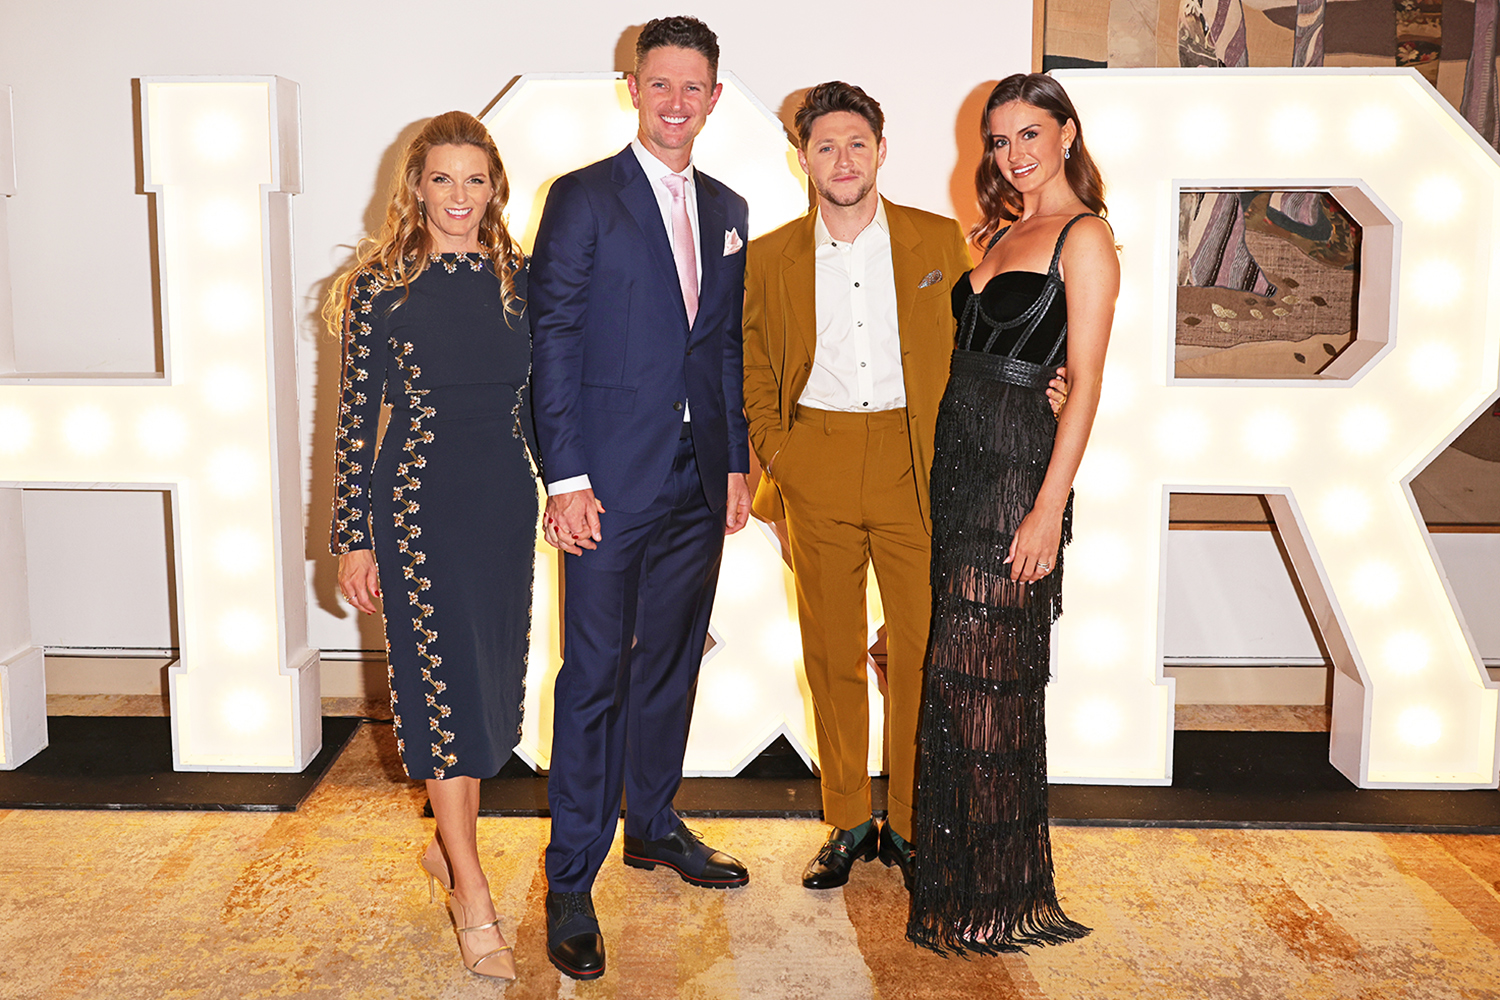 Kate Rose, Justin Rose, Niall Horan and Mia Woolley attend the Horan & Rose Show: Modest! Golf co-founder Niall Horan and Justin Rose brought the world of music and sport together at The Grove, presenting an evening of entertainment to raise money for The Black Heart Foundation on September 03, 2021 in Watford, England.